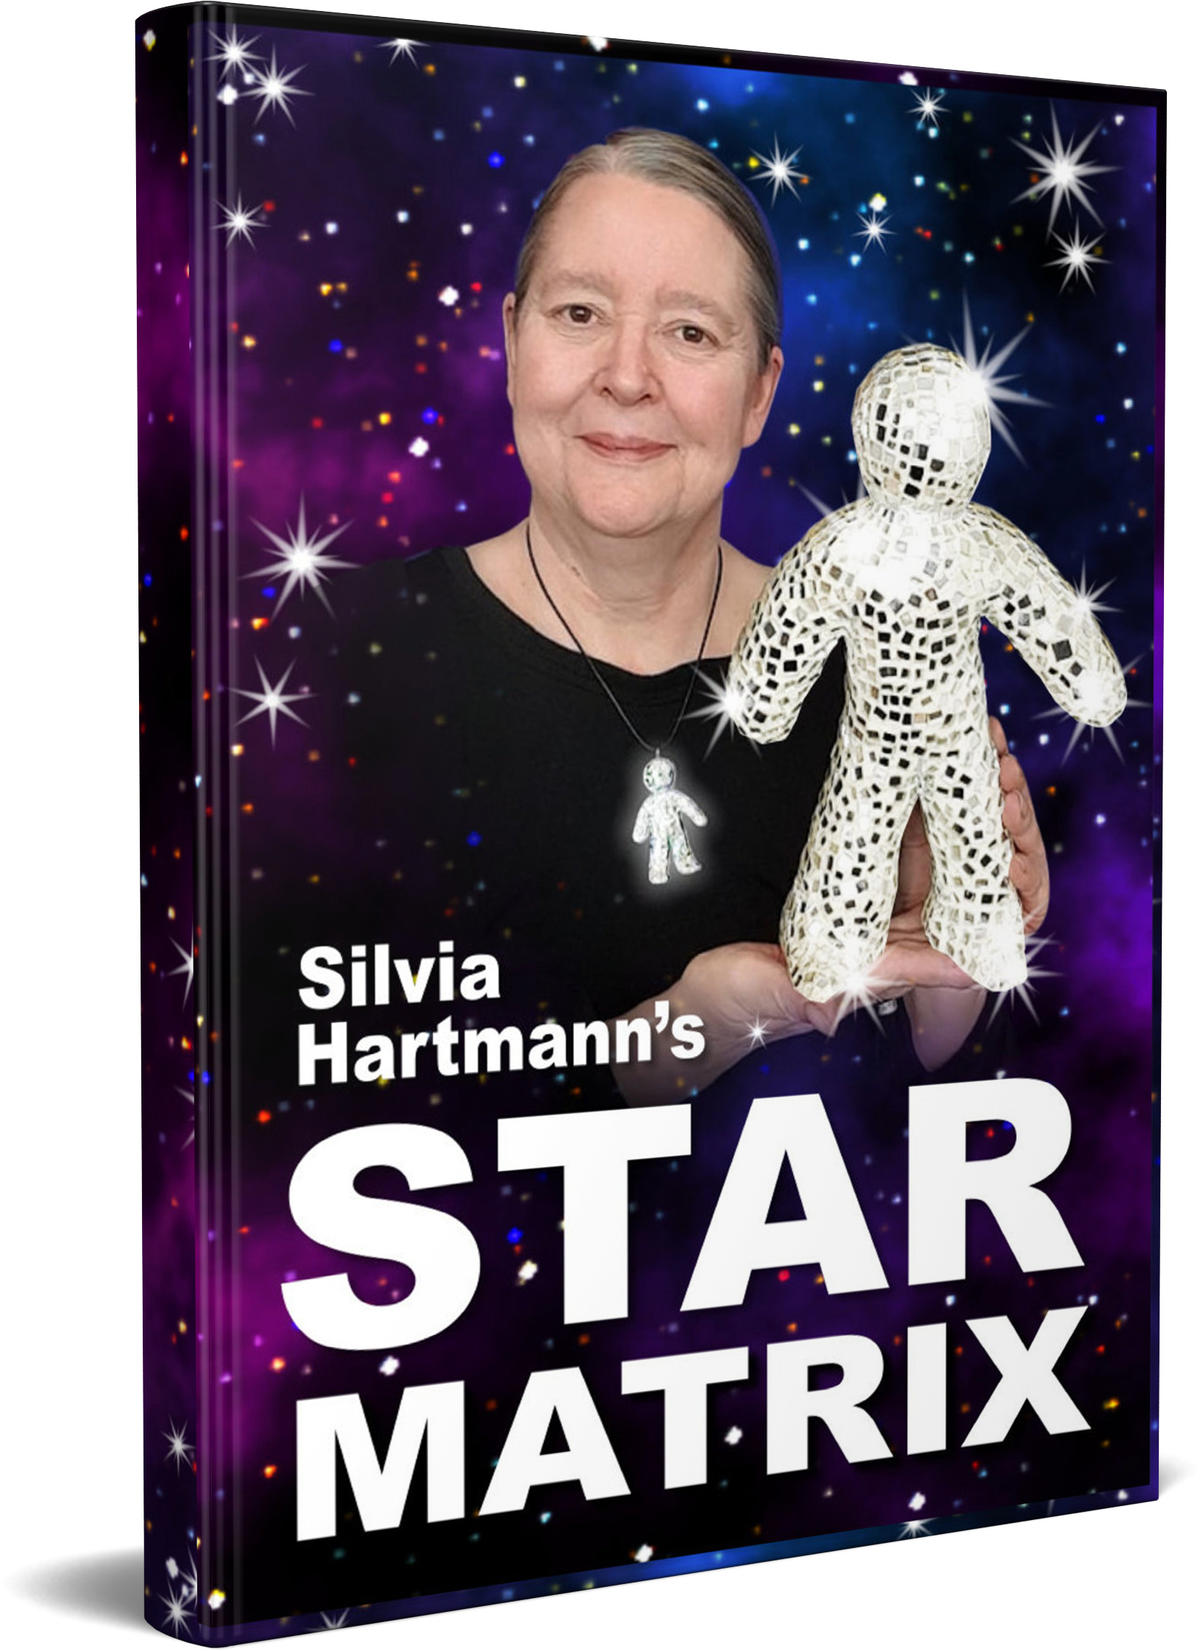 Star Matrix The eBook by Silvia Hartmann: 1st Edition is Available Now!